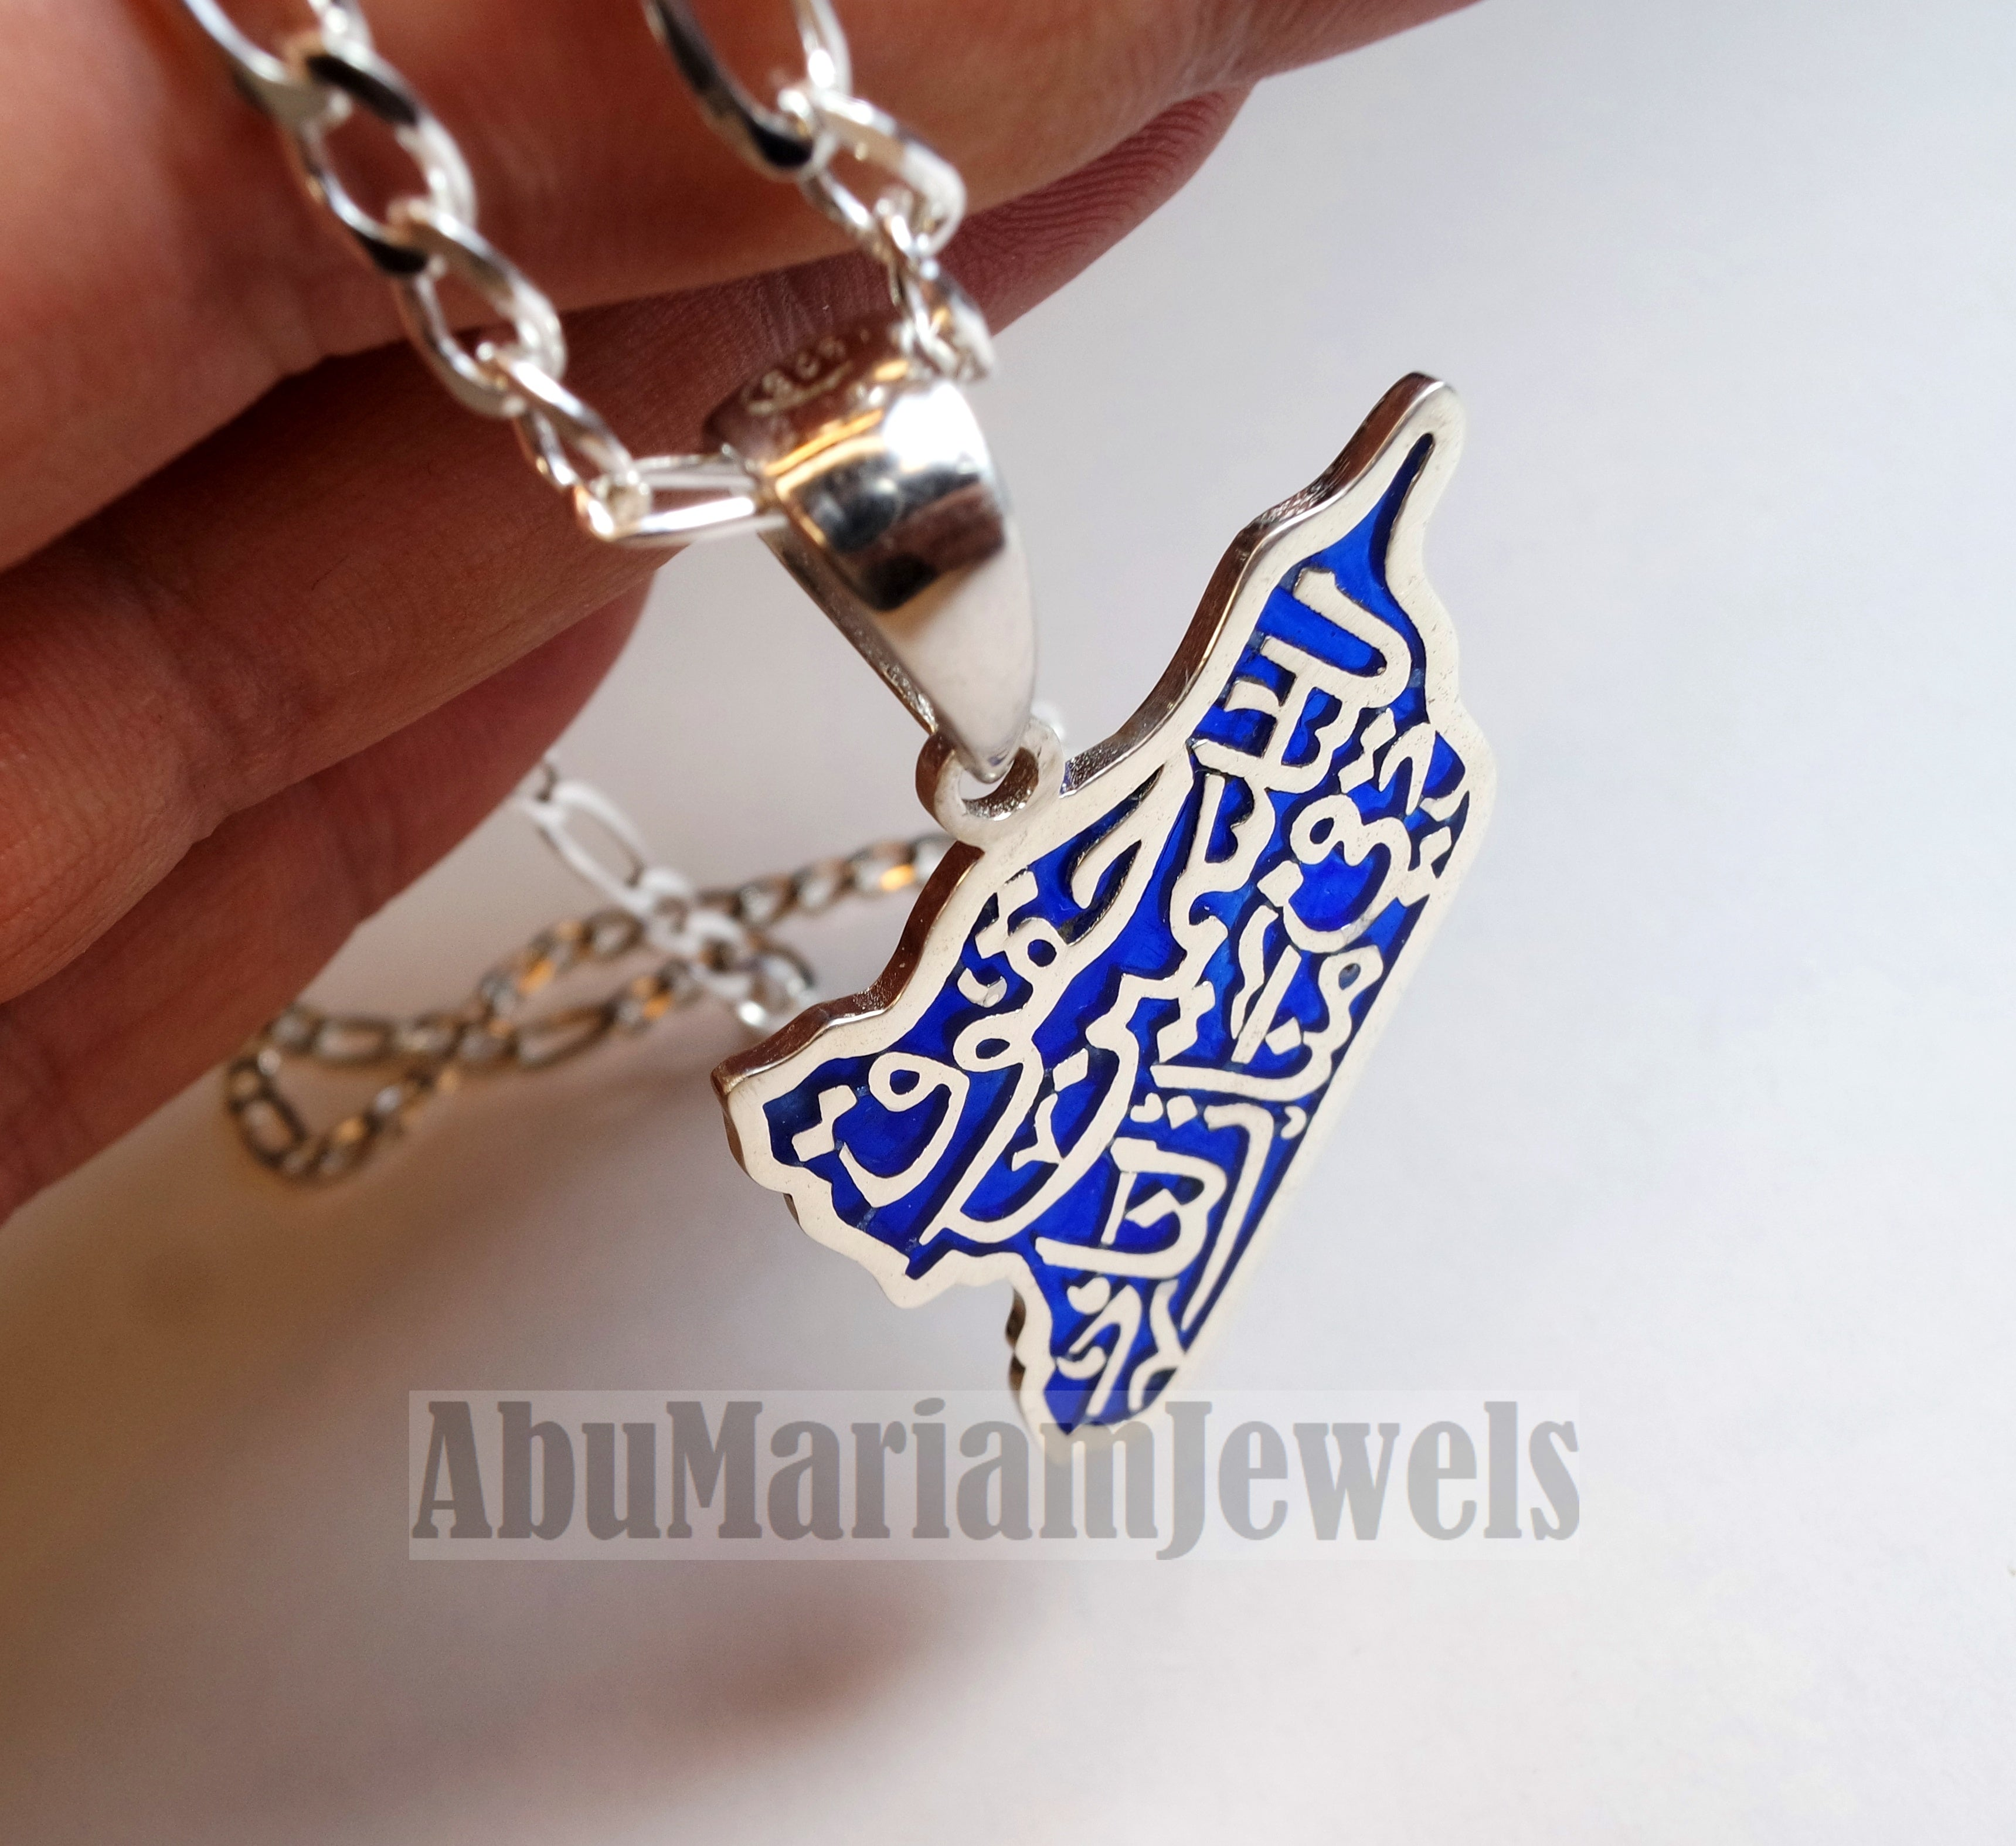 Syria map pendant with thick chain famous poem verse sterling silver 925 dark blue enamel مينا high quality jewelry arabic fast shipping خارطه سوريا